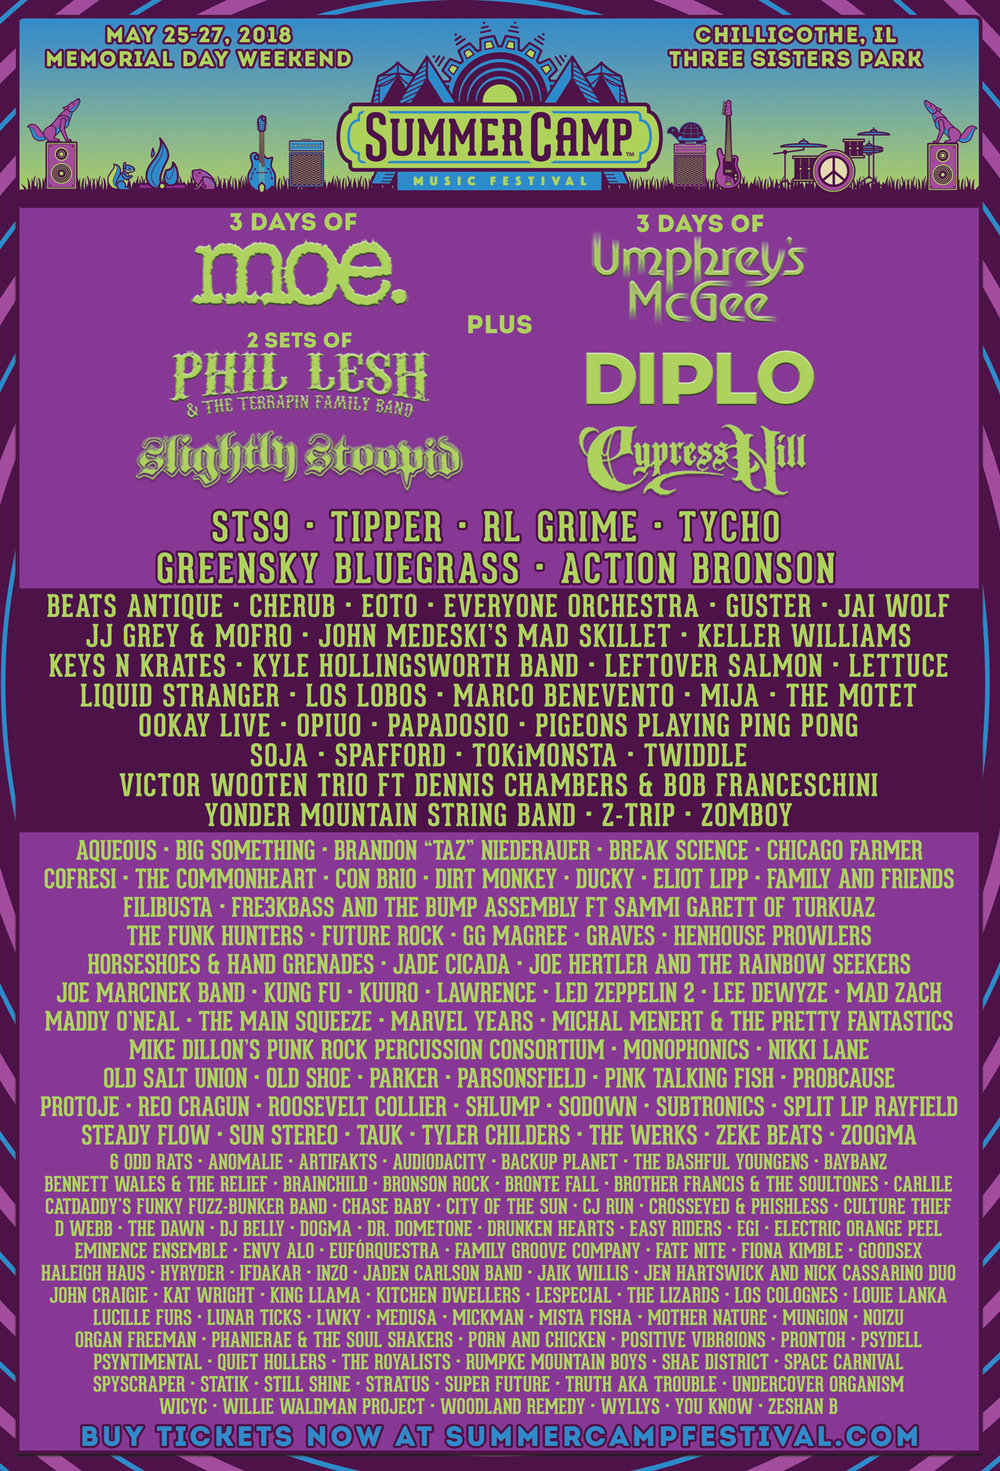 That is a LOT of music in one place! What a line-up!